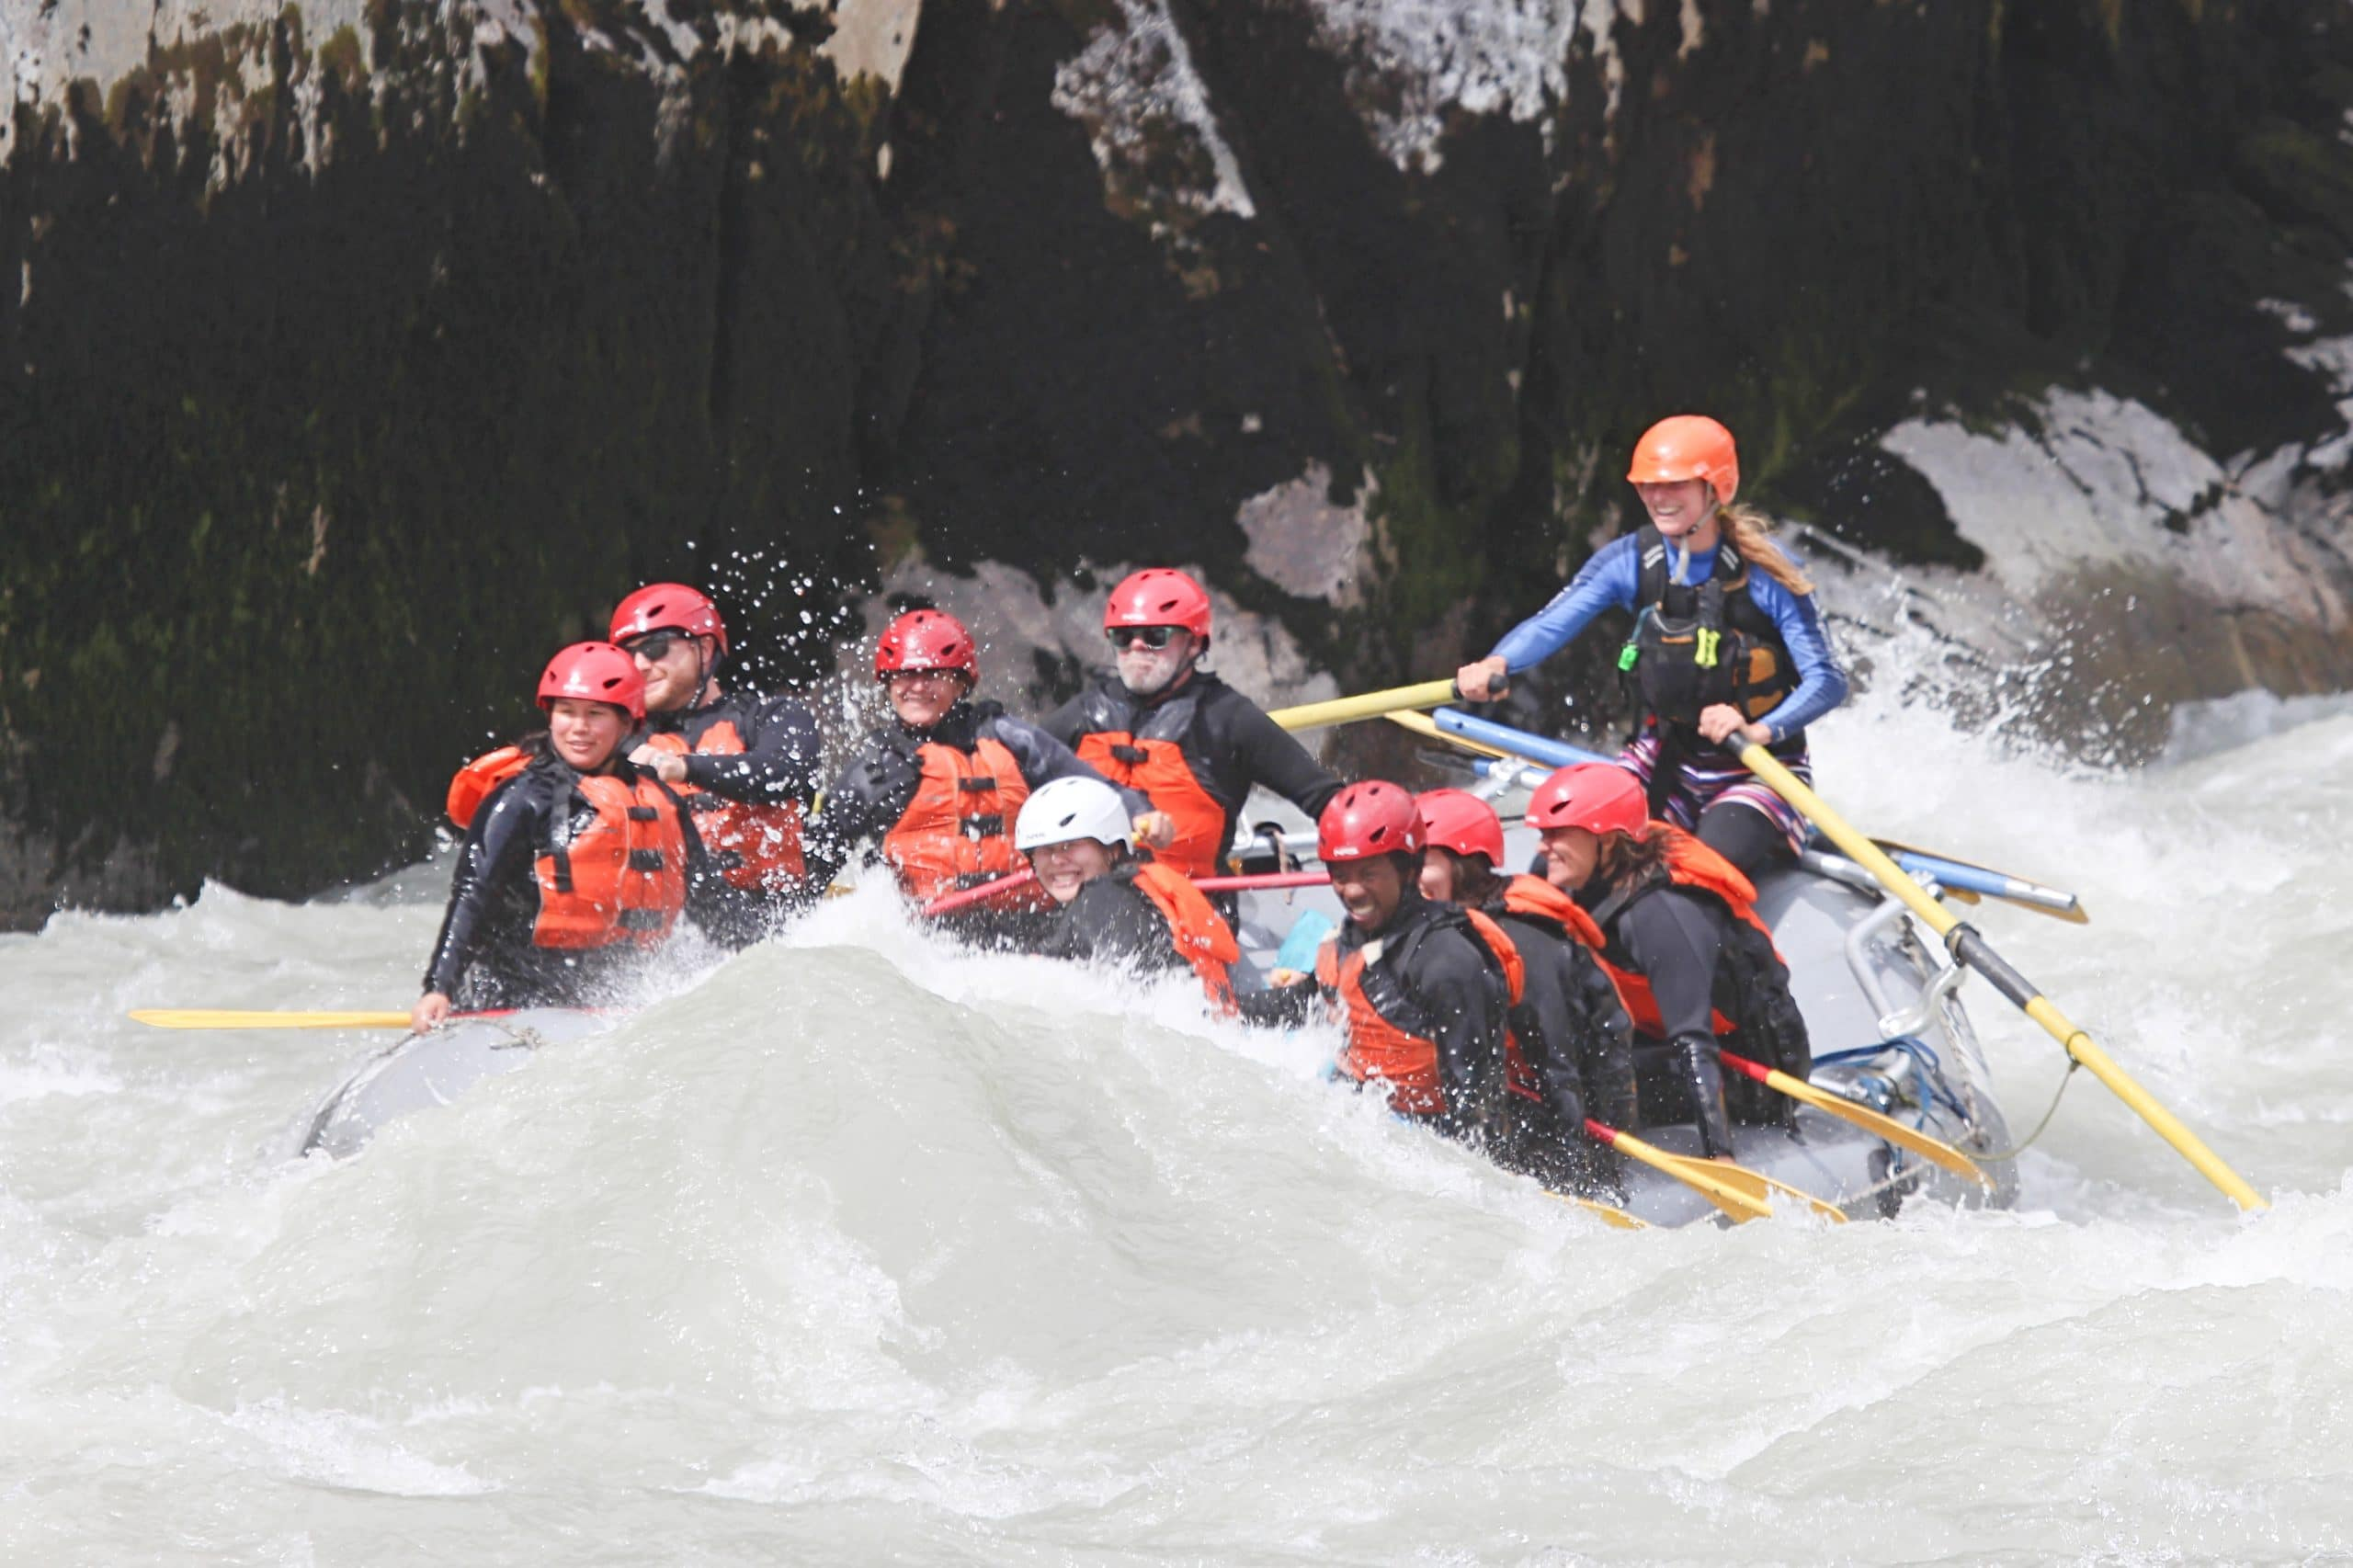 A group of young people whitewater rafting through a canyon in Squamish, BC.